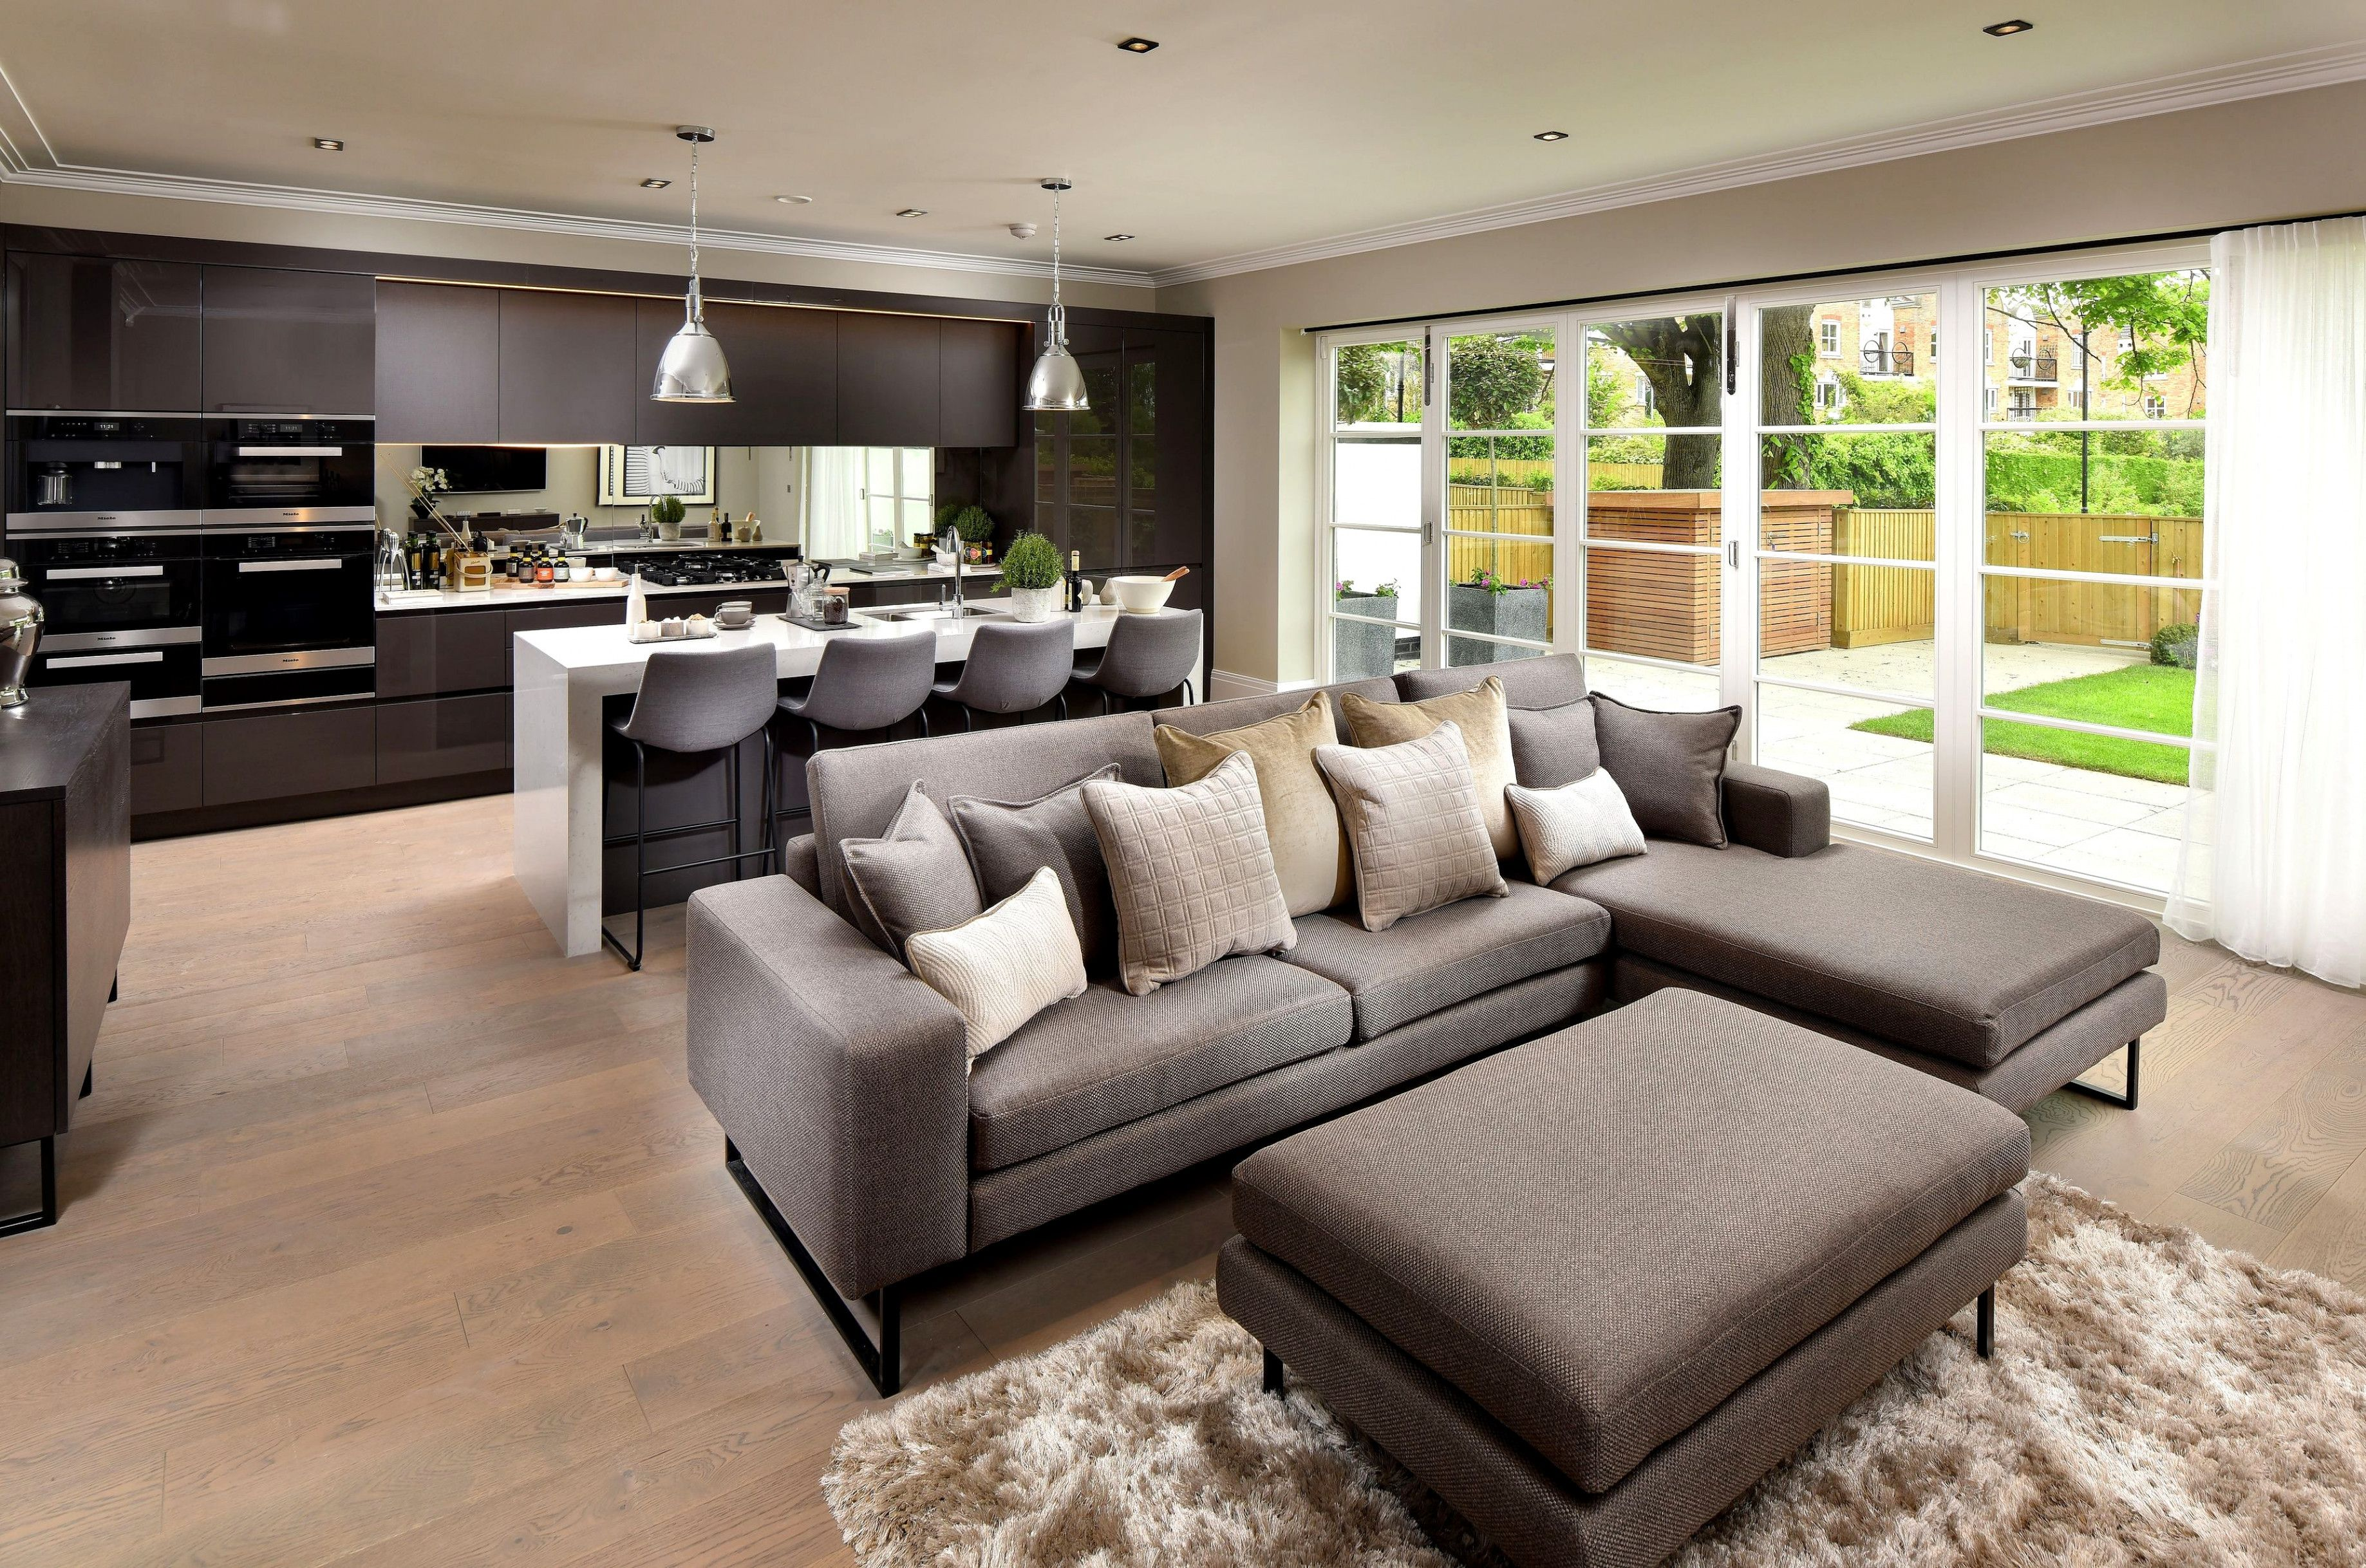 Open Plan Living Is Desirable For New Homes The Large Open Floor Space And Open Plan Kitchen Living Room Open Plan Living Room Living Room And Kitchen Design